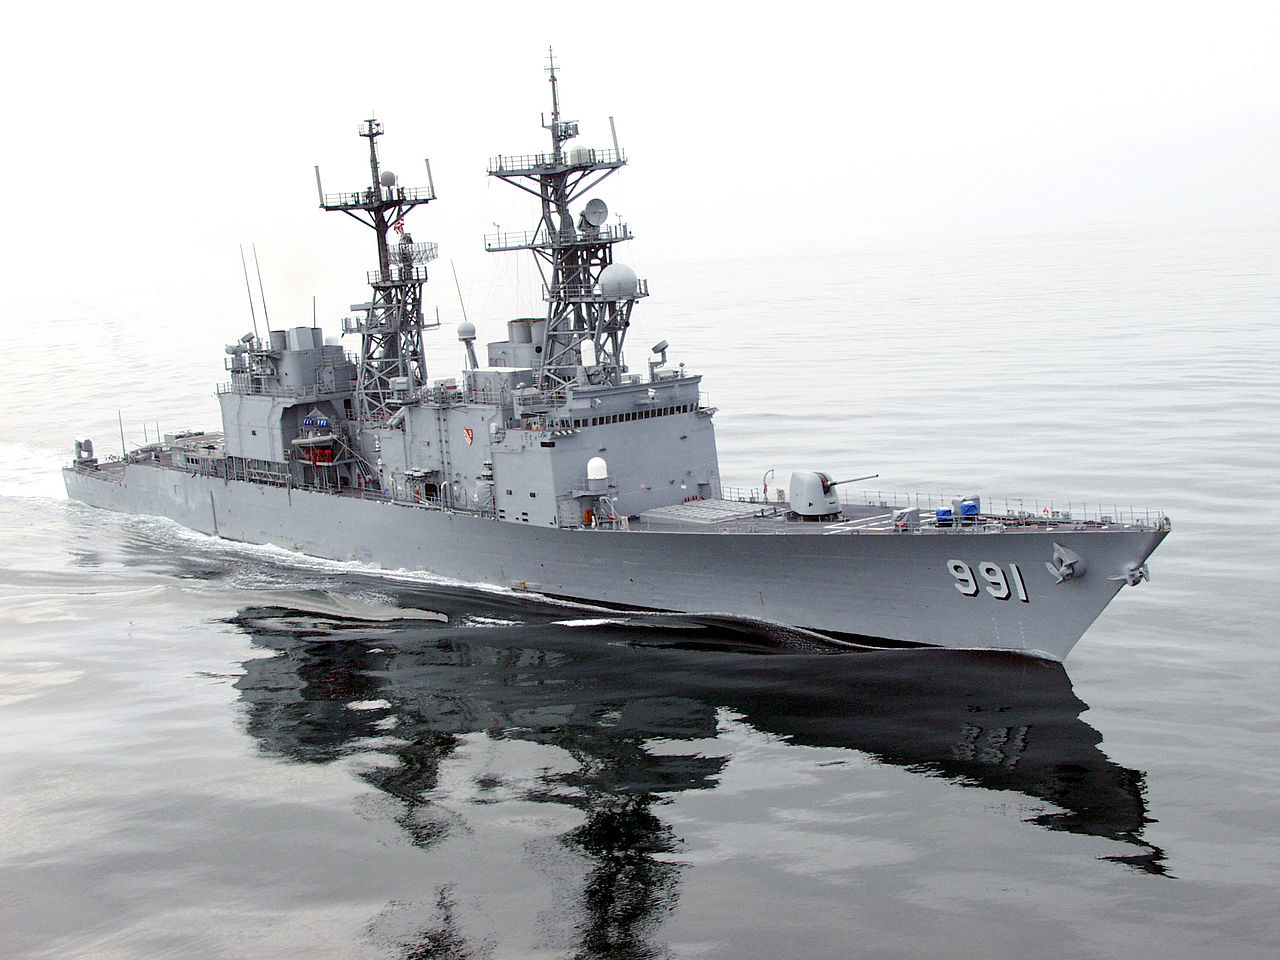 remote controlled ships with Why The Navy Needs More Than Just More Ships on Remote Controlled Simulation Black Widow Spider Toy 4 X Aaa 139158 also Rc Ready To Run La Class Diving Submarine 1100 Scale moreover Framo Hydraulic Cargo Pumping System On Ships together with Magach Tank Pictures additionally .